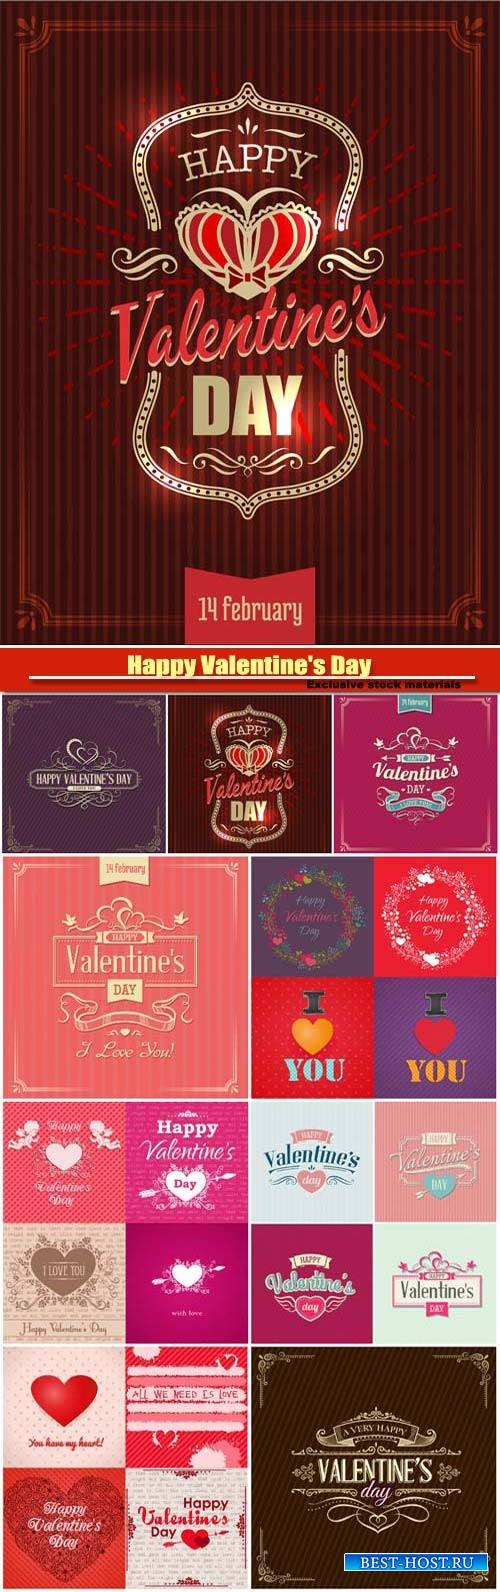 Happy Valentine's Day vector, hearts, romance, love #17